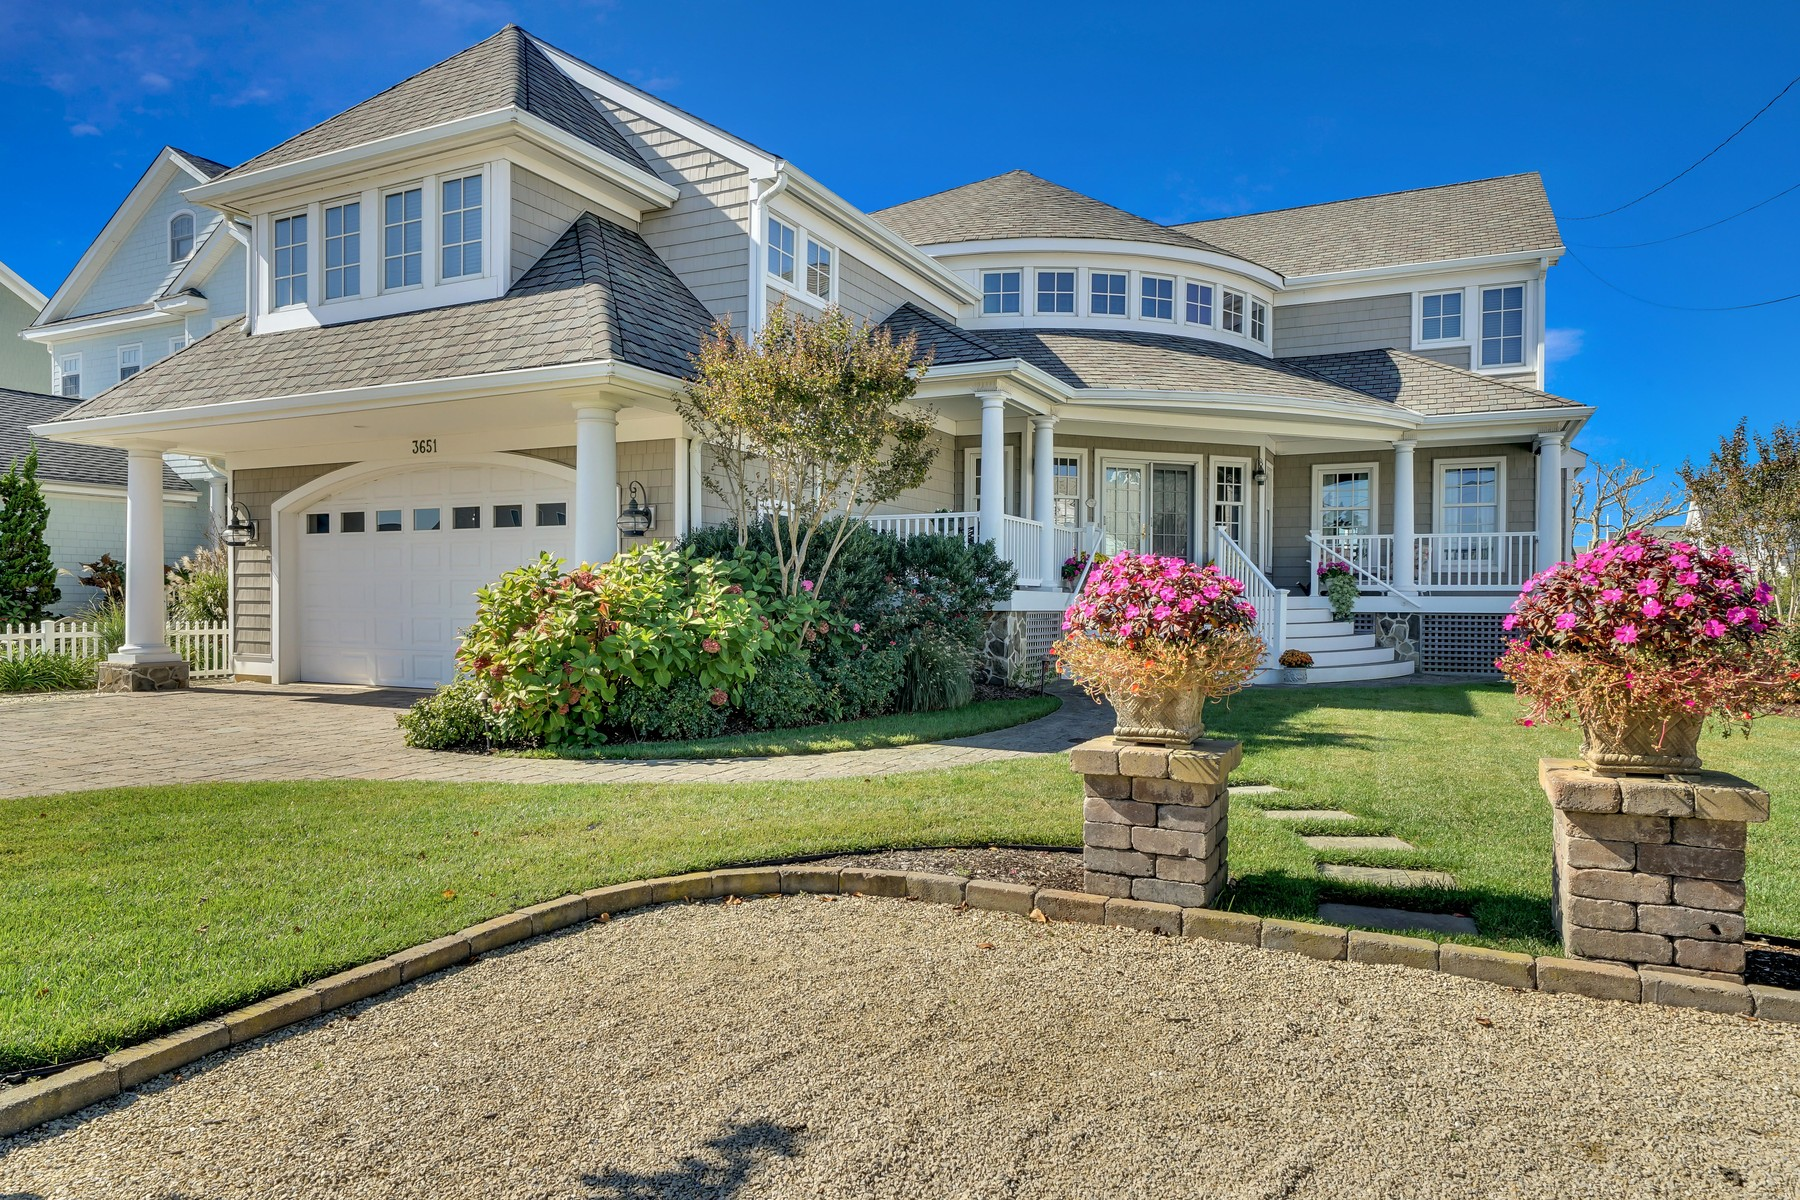 Single Family Home for Sale at Spectacular Custom Home With Open Bay Views 3651 Bayside Court, Normandy Beach, New Jersey, 08739 United States